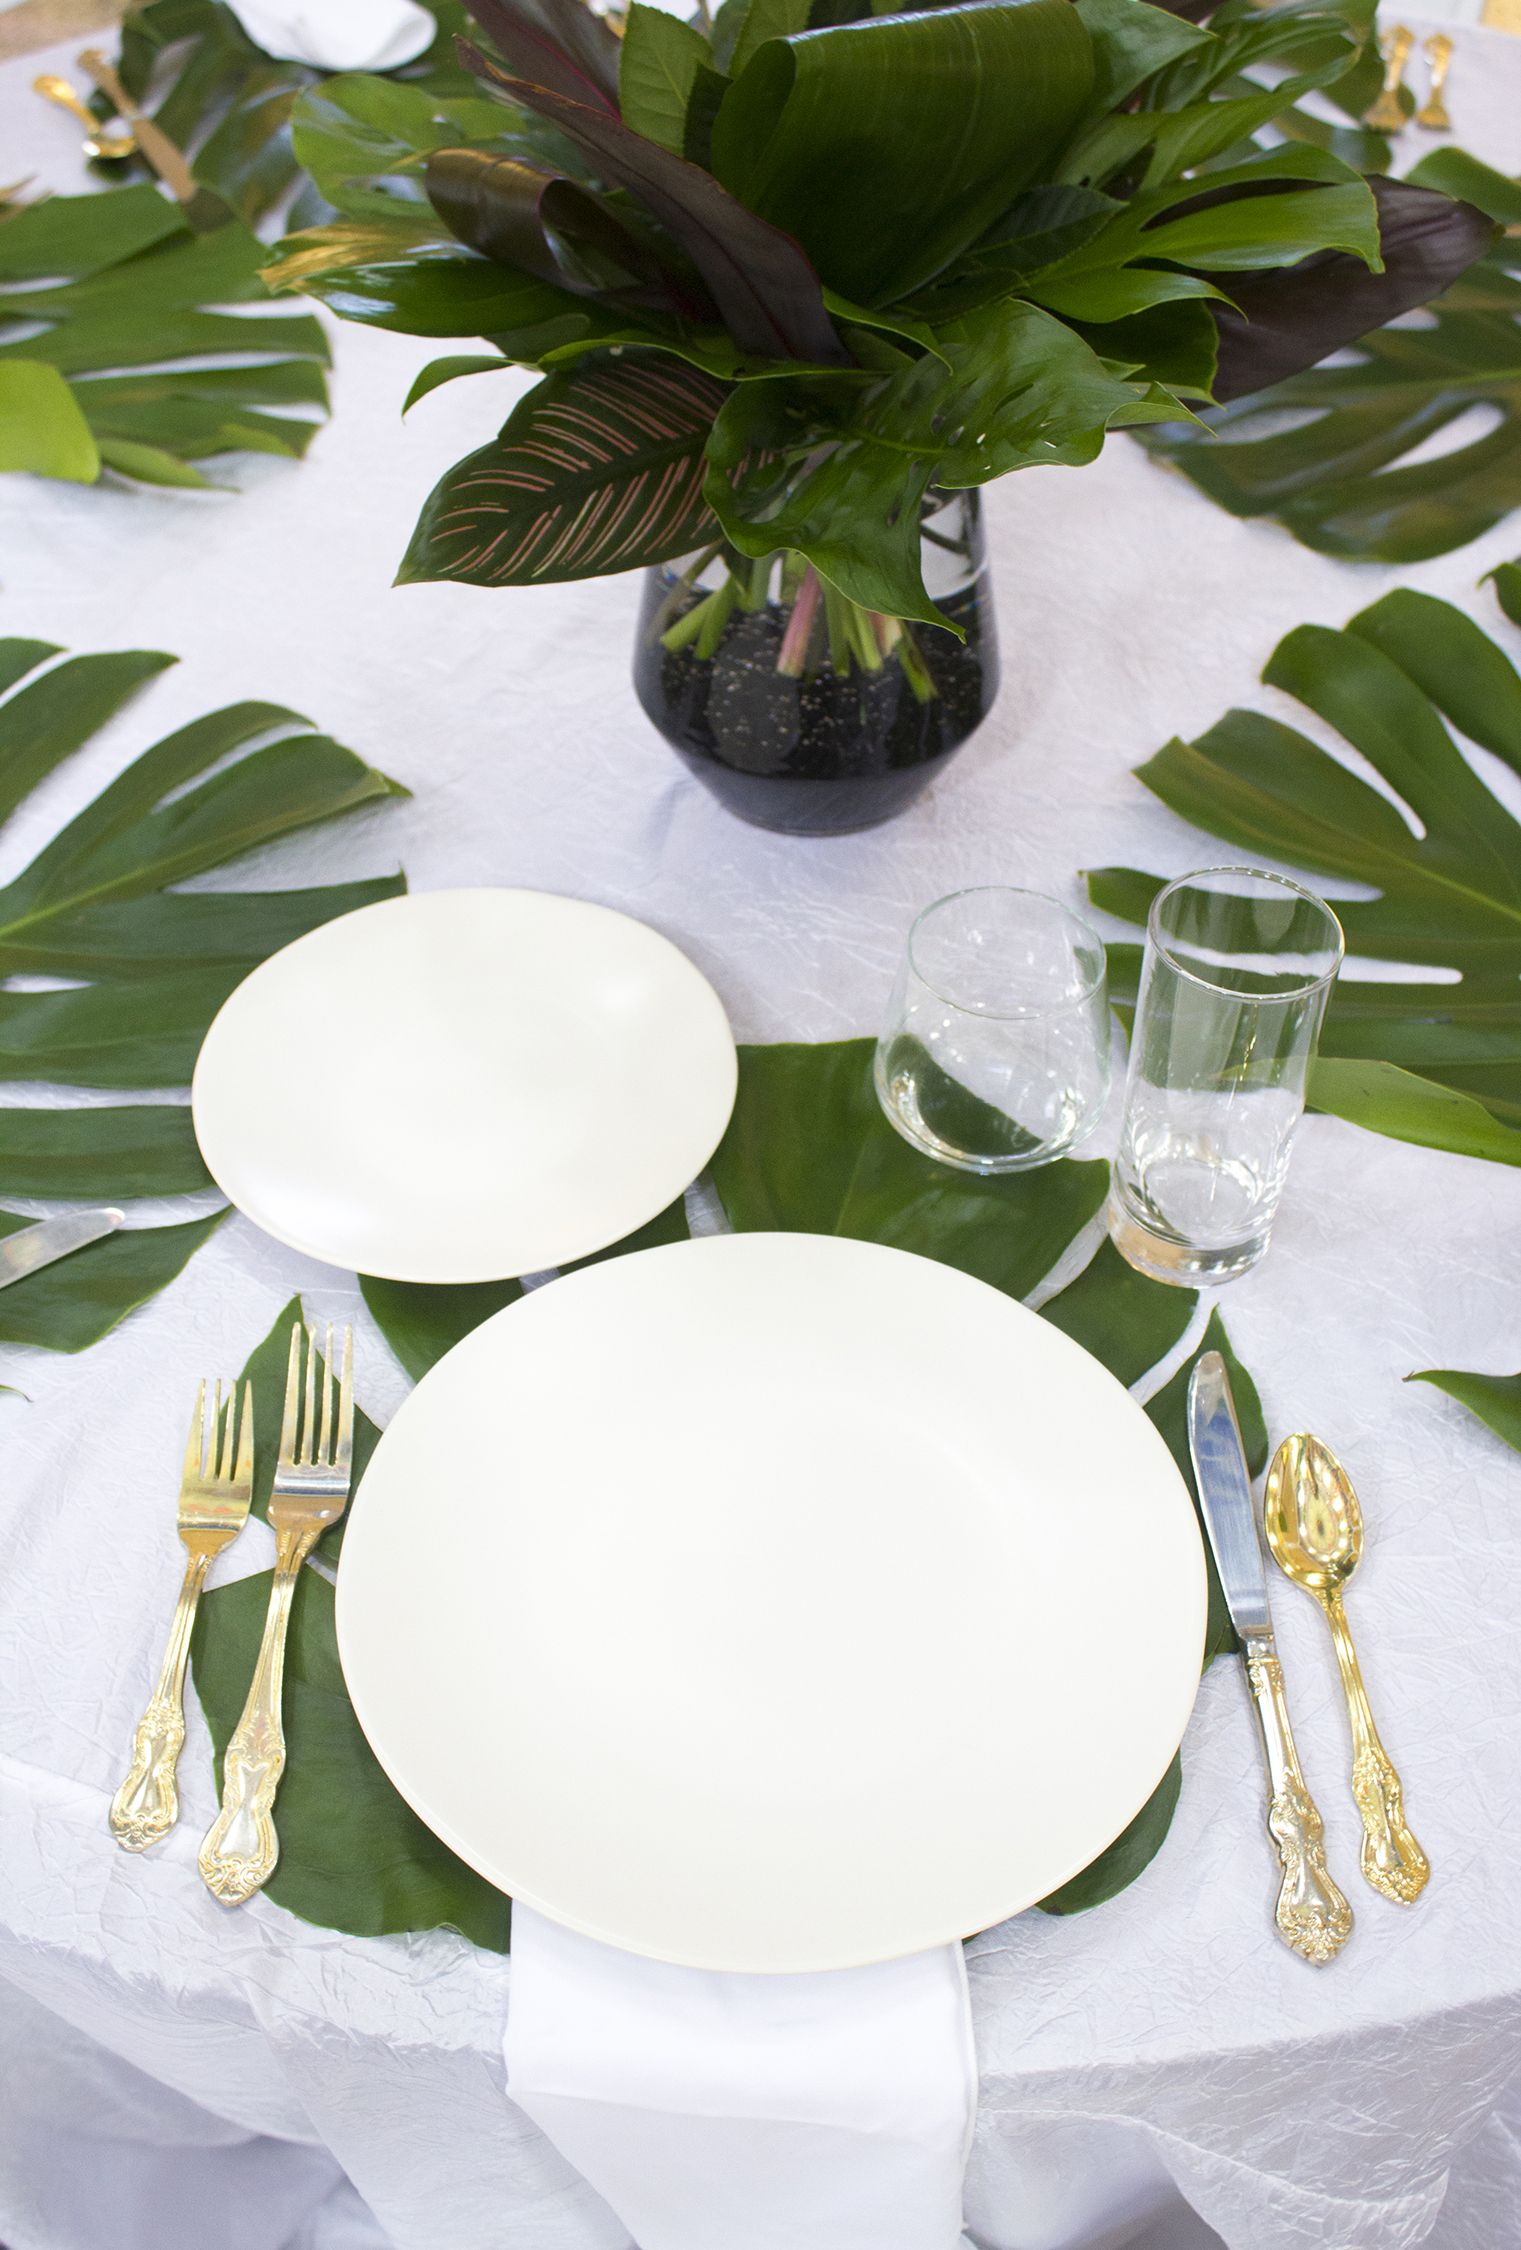 Fresh And Vibrant Place Setting With An All Greenery Centerpiece And Real Monstera Leaf Place Mats Provided Greenery Centerpiece Wedding Leaves Place Settings